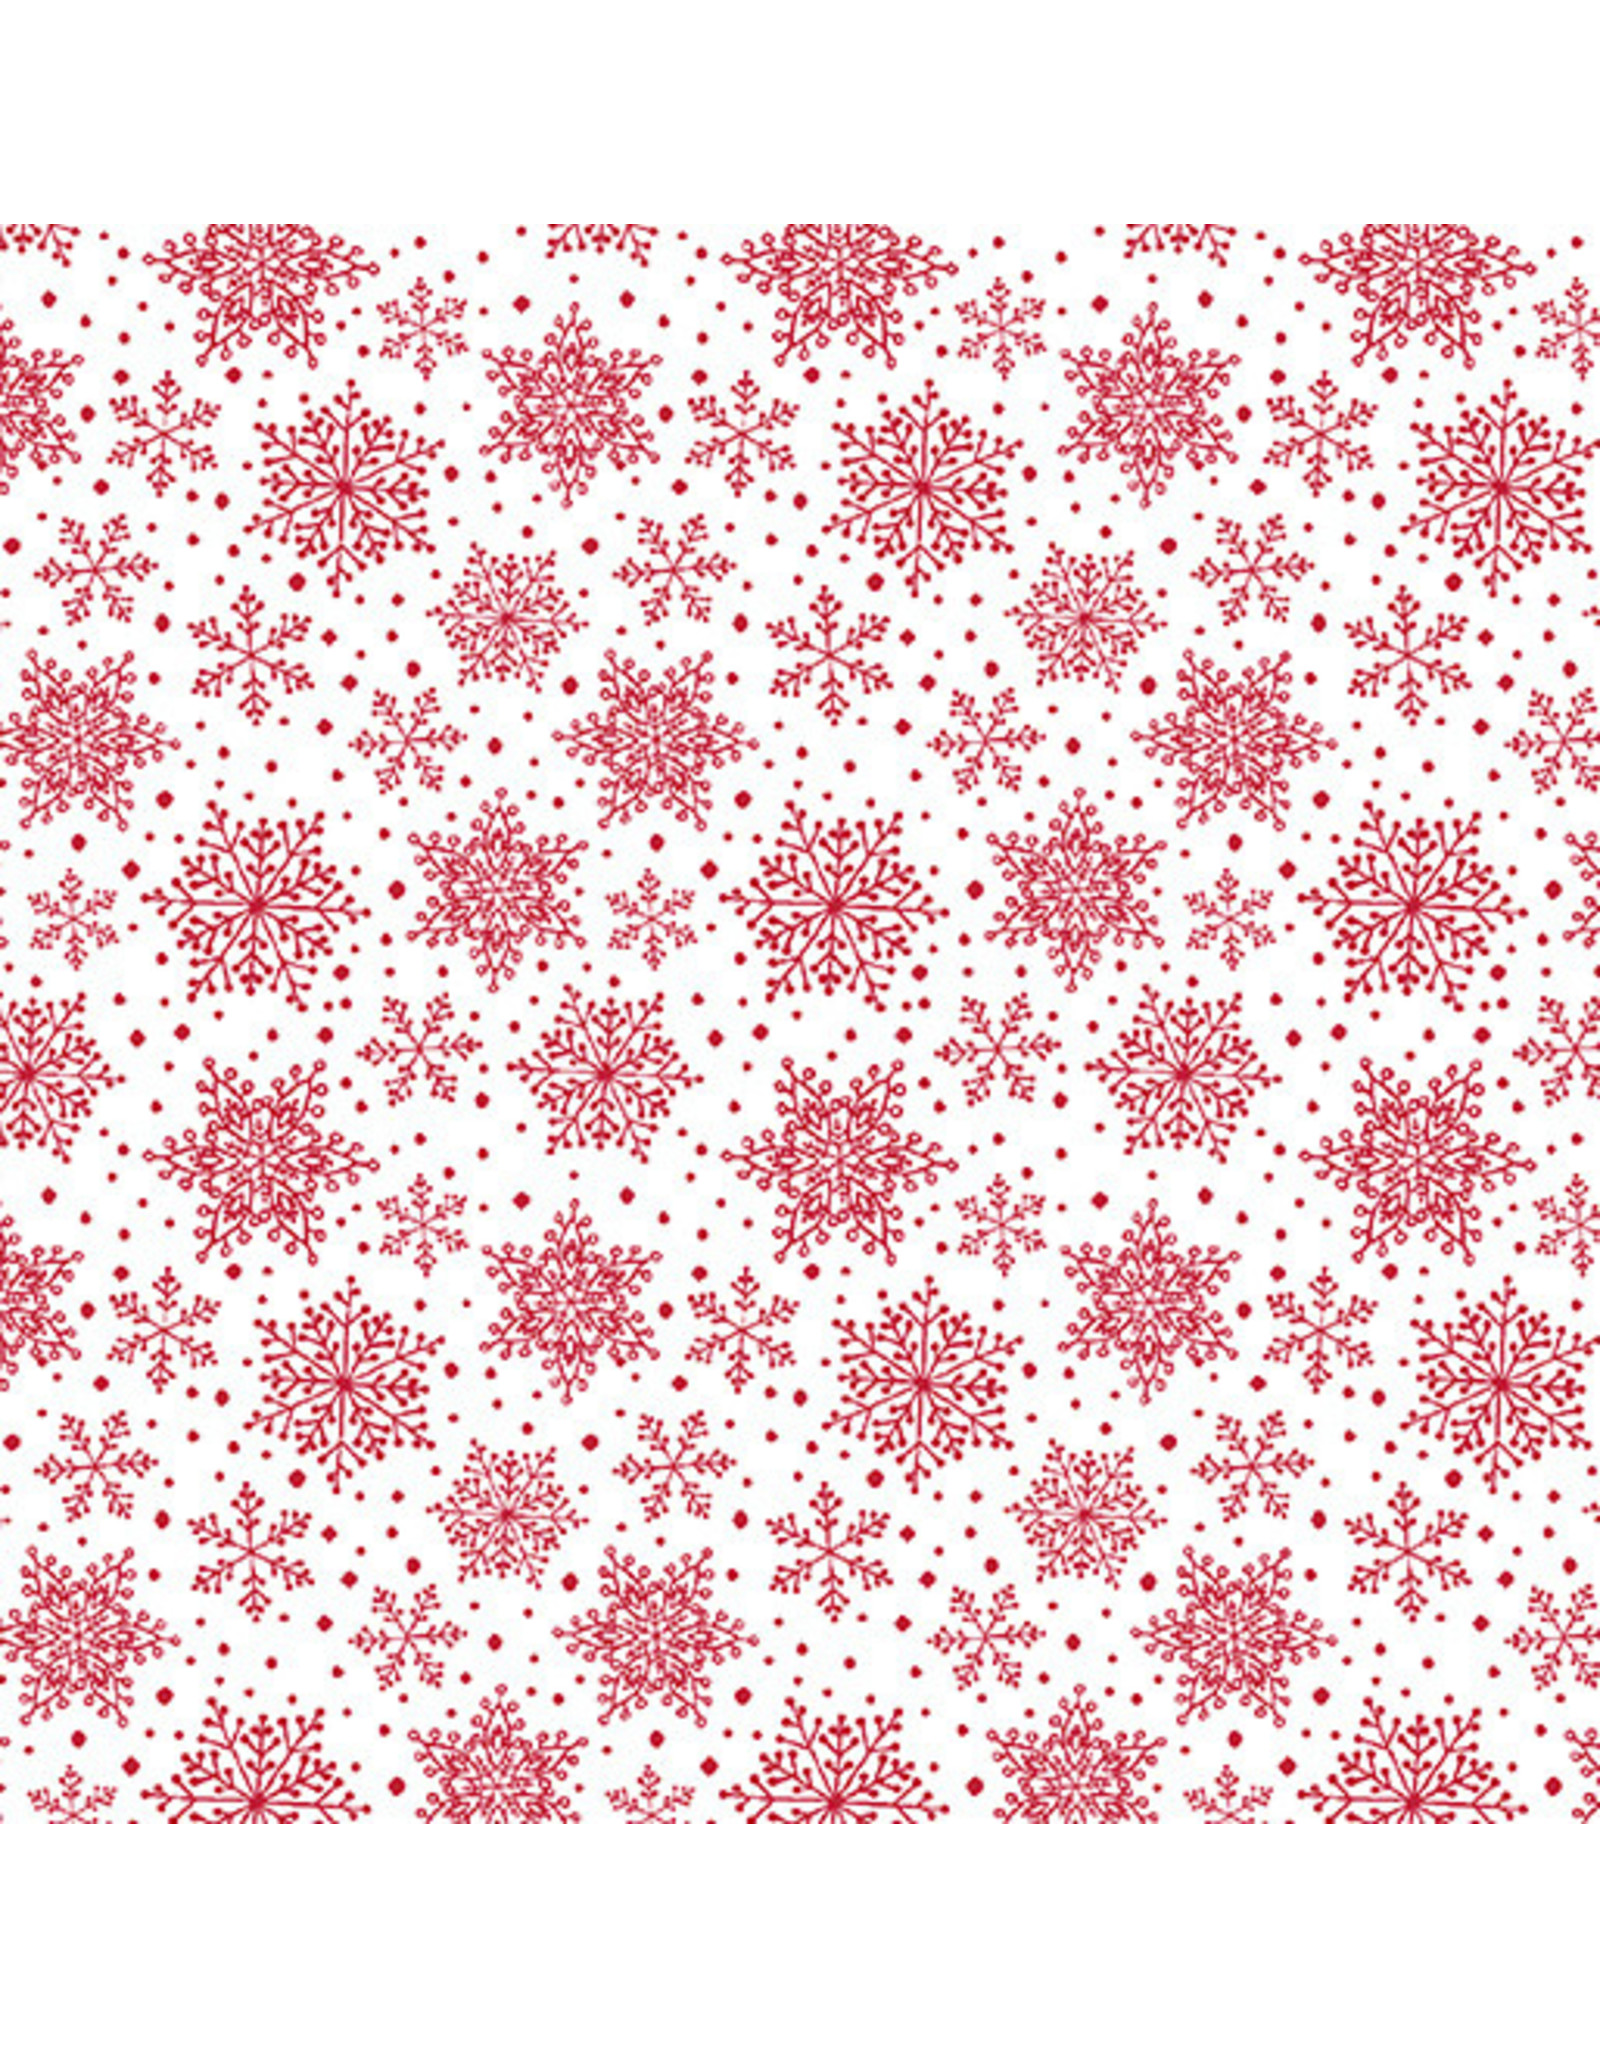 Contempo Hearty the Snowman - Snow Flakes White/Red